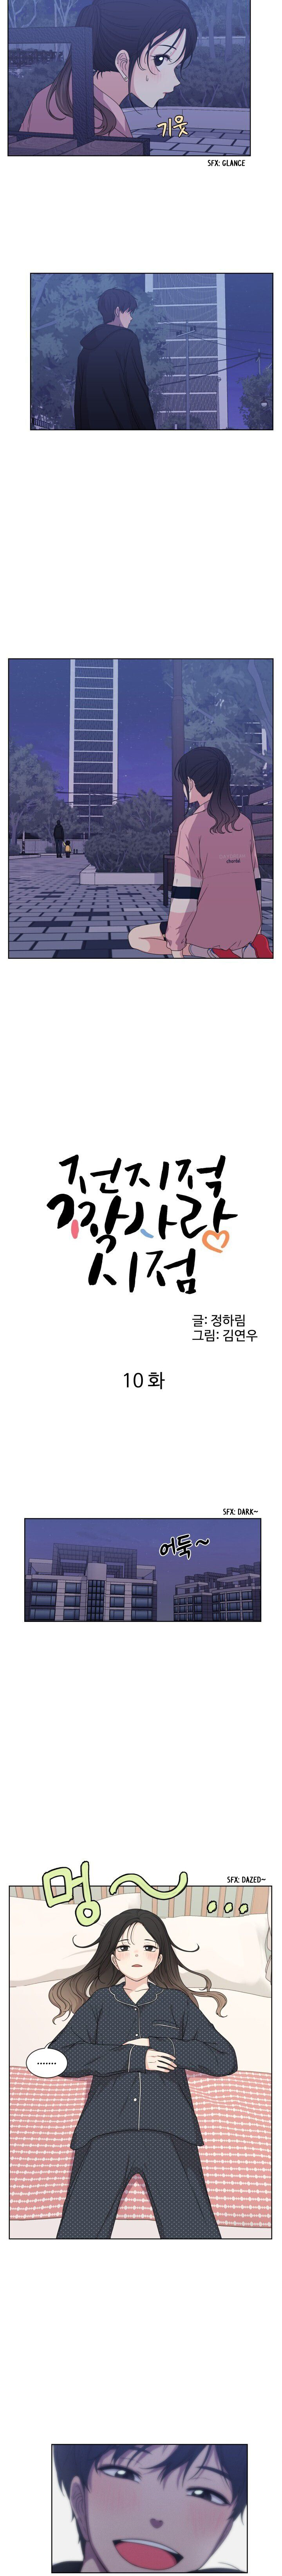 The Omniscient POV Of An Unrequited Love - chapter 10 - #2